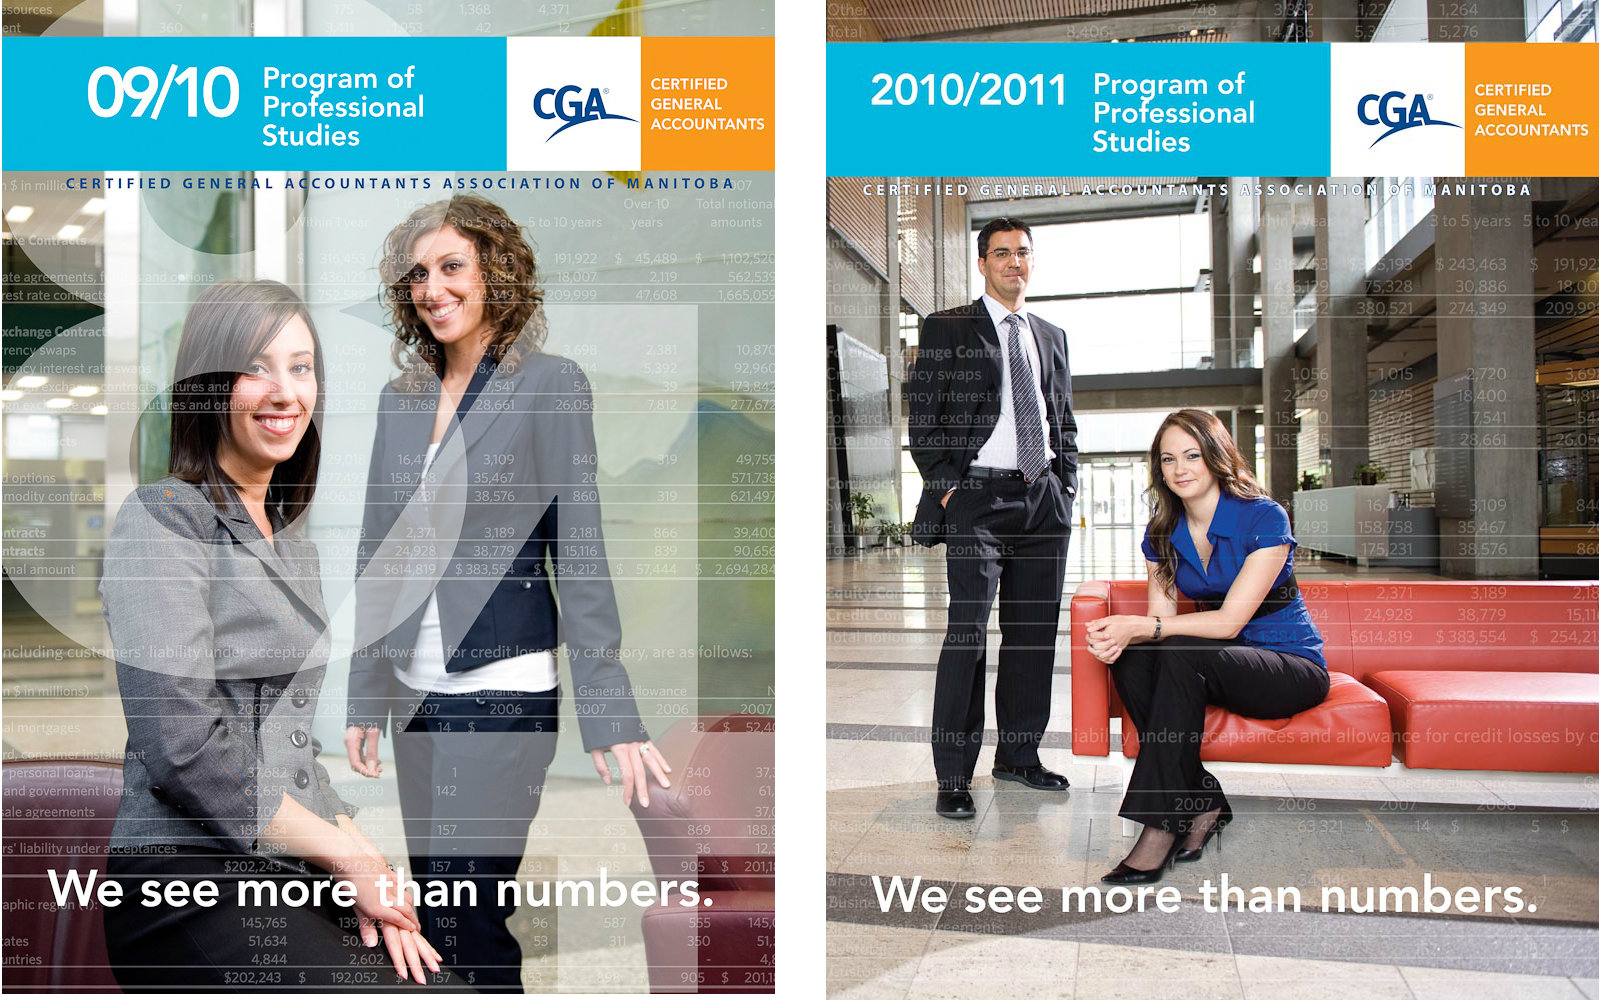 CGA ad by Winnipeg commercial photographer